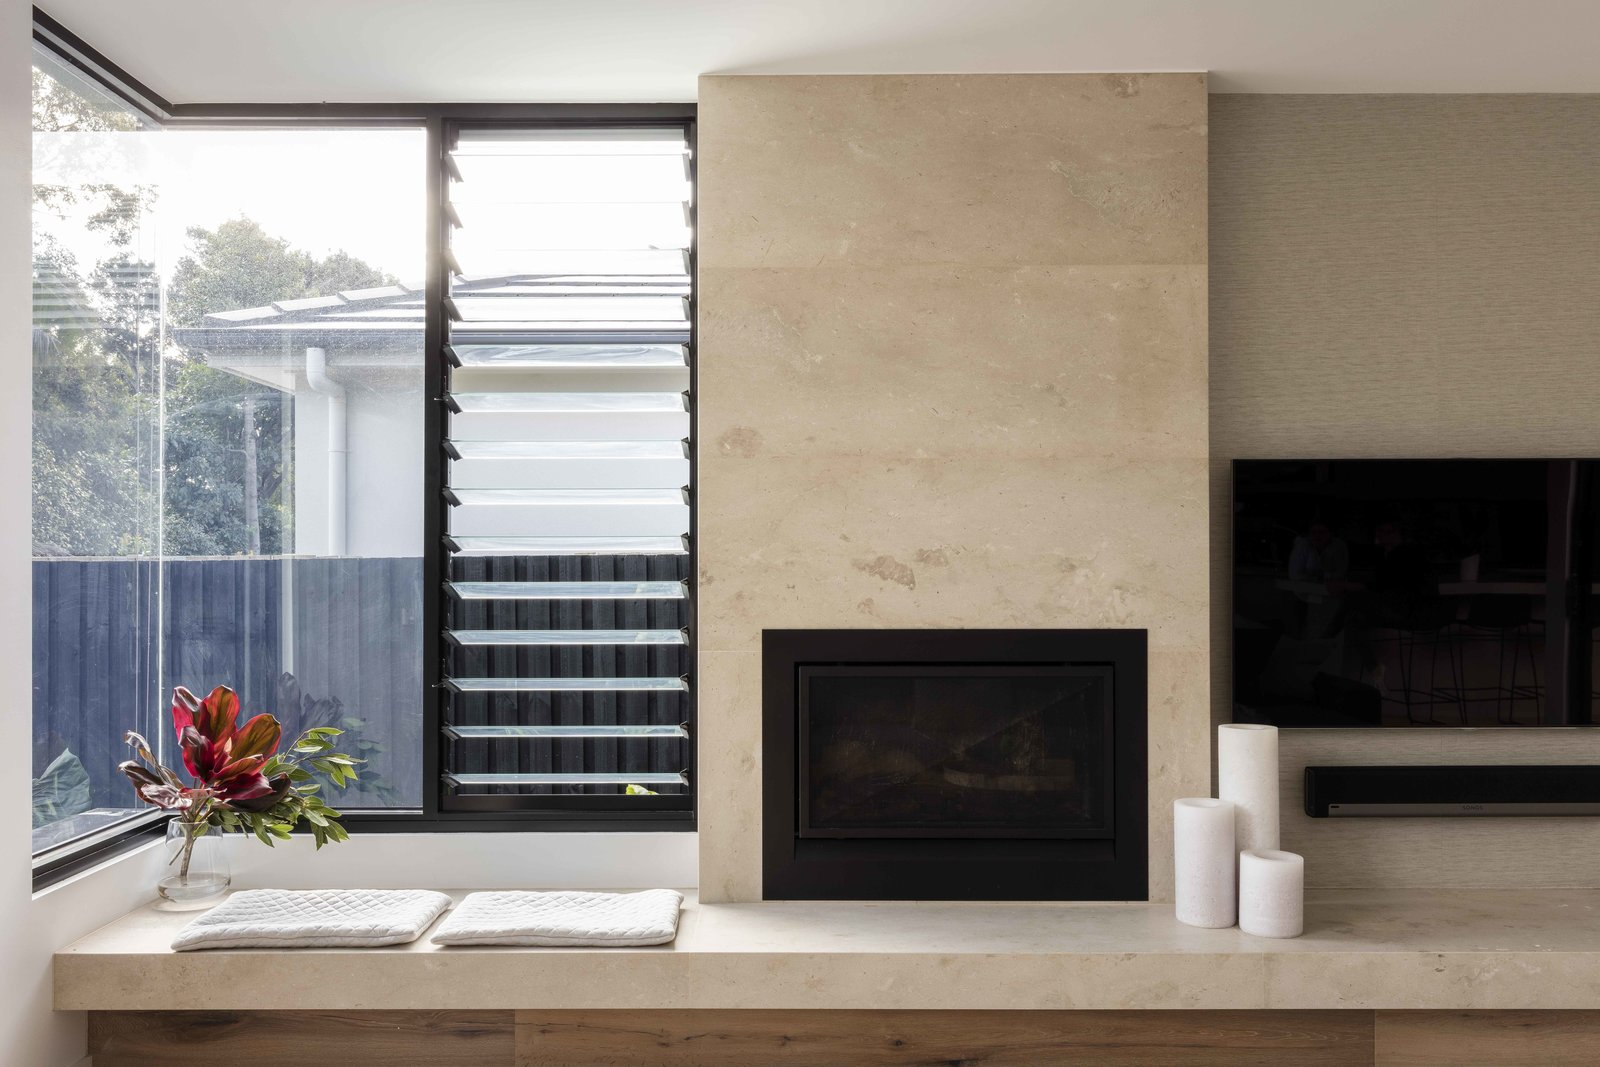 Tagged: Living Room, Wood Burning Fireplace, Bench, and Storage.  The Rose Bay House by Prebuilt